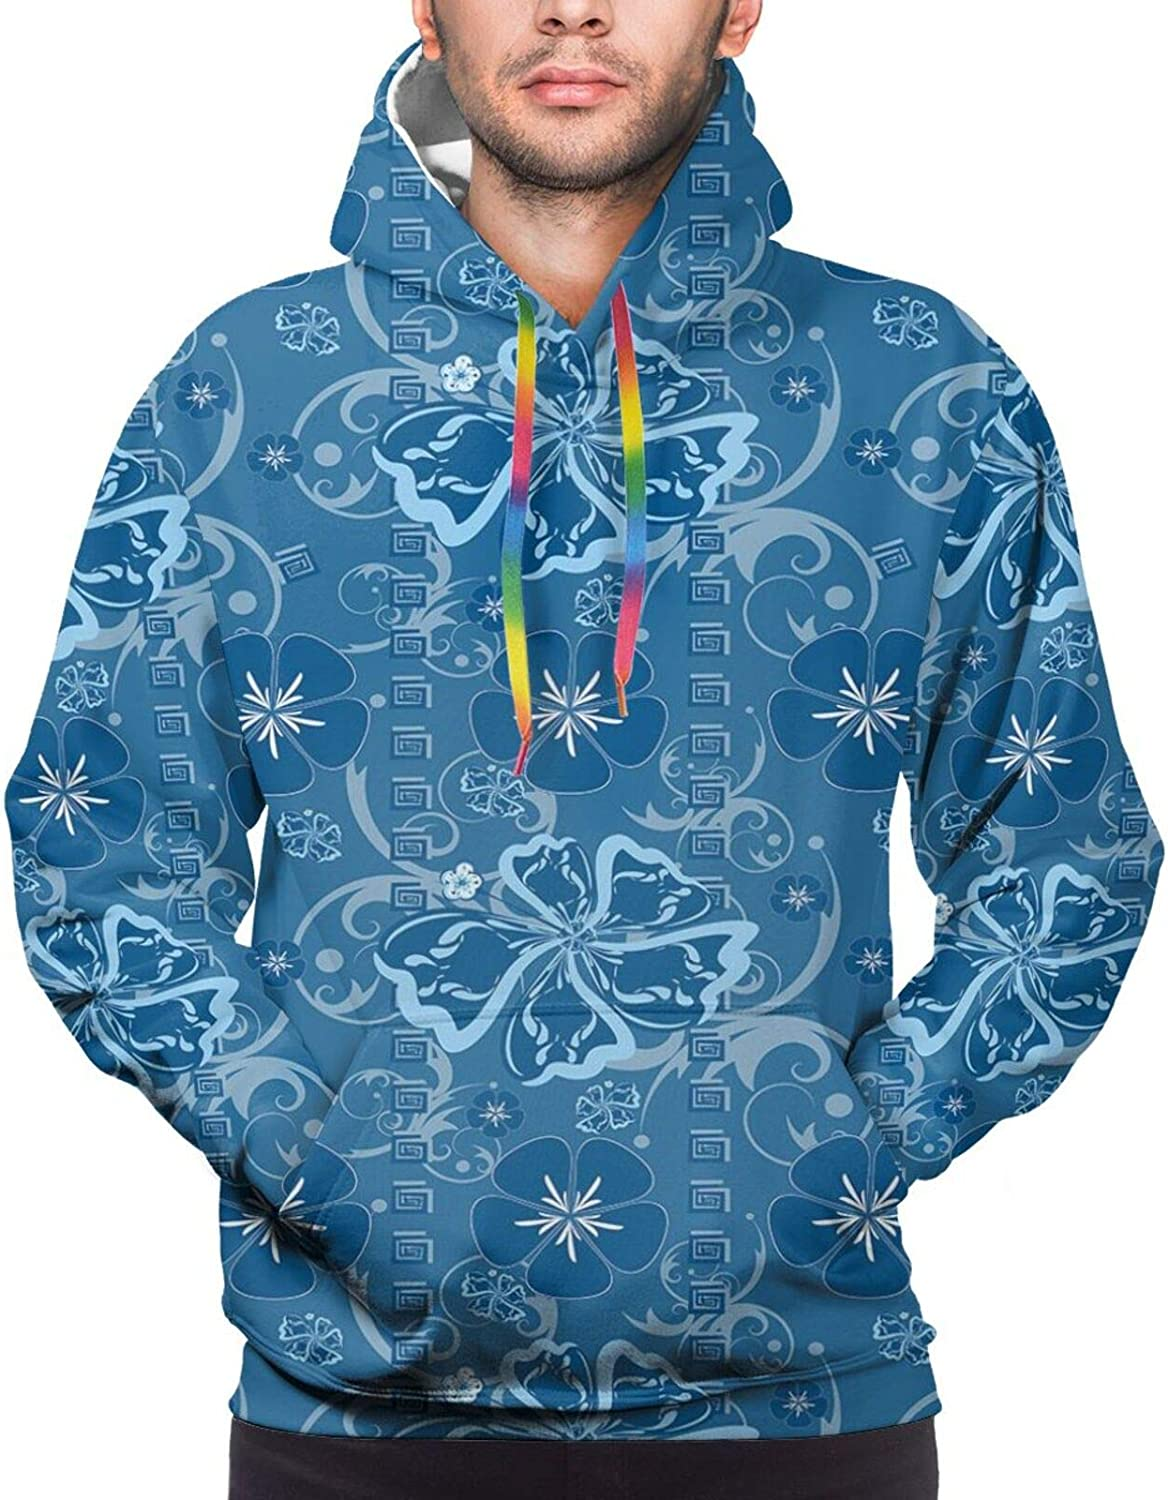 Men's Hoodies Sweatshirts,Polygonal Nature Gradient Effect Blue and Green Tiles with Seagull Motif